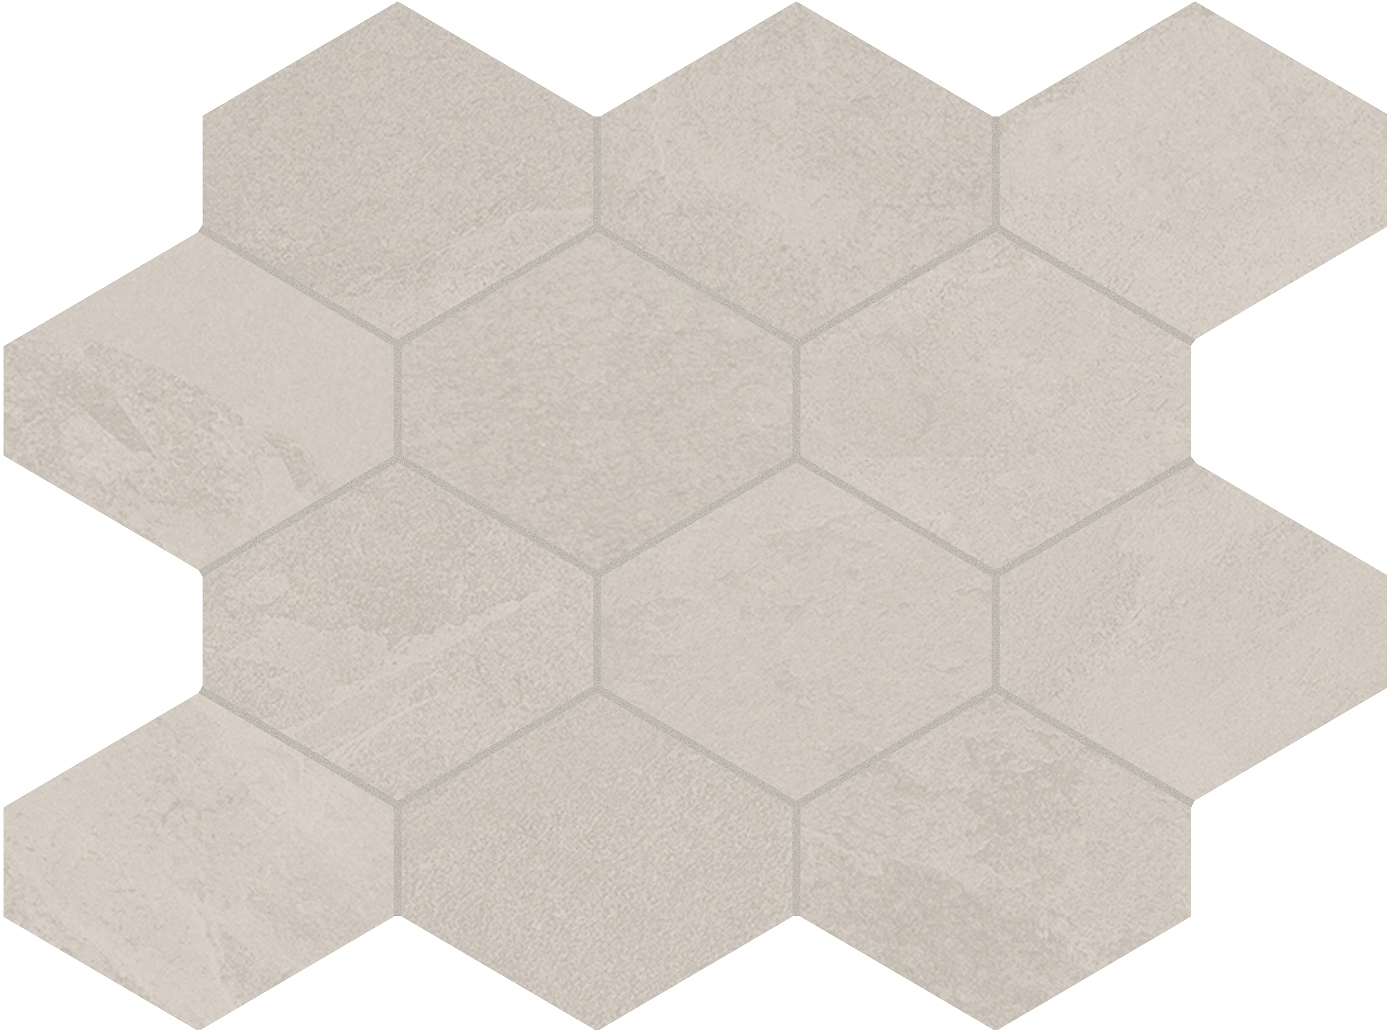 Unicom Starker BRAZILIAN SLATE Oxford White Hexagon UNI-0008491 Mosaik 25x34 Matt